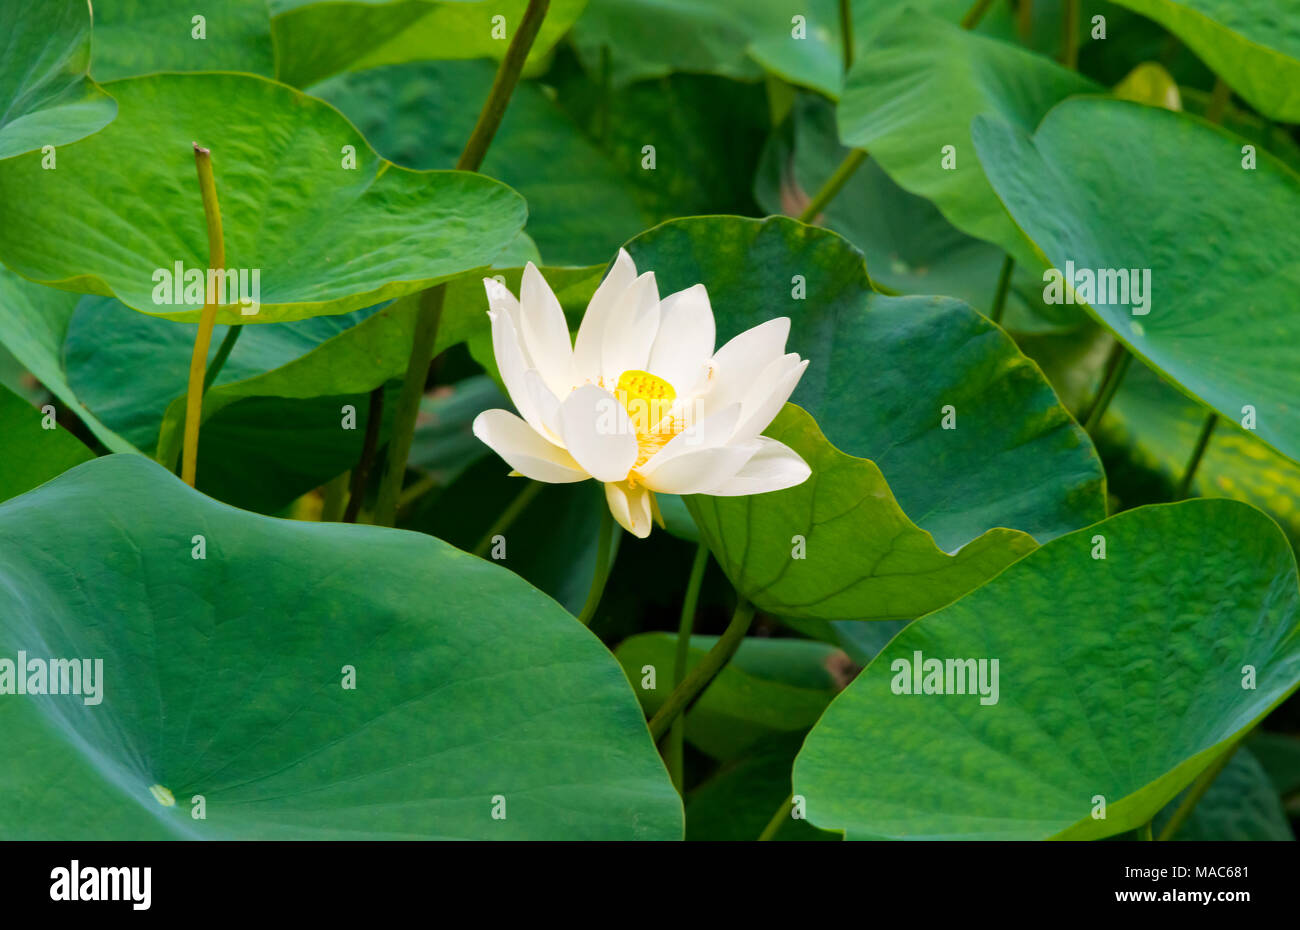 Lotus Flower China Stock Photo 178518593 Alamy